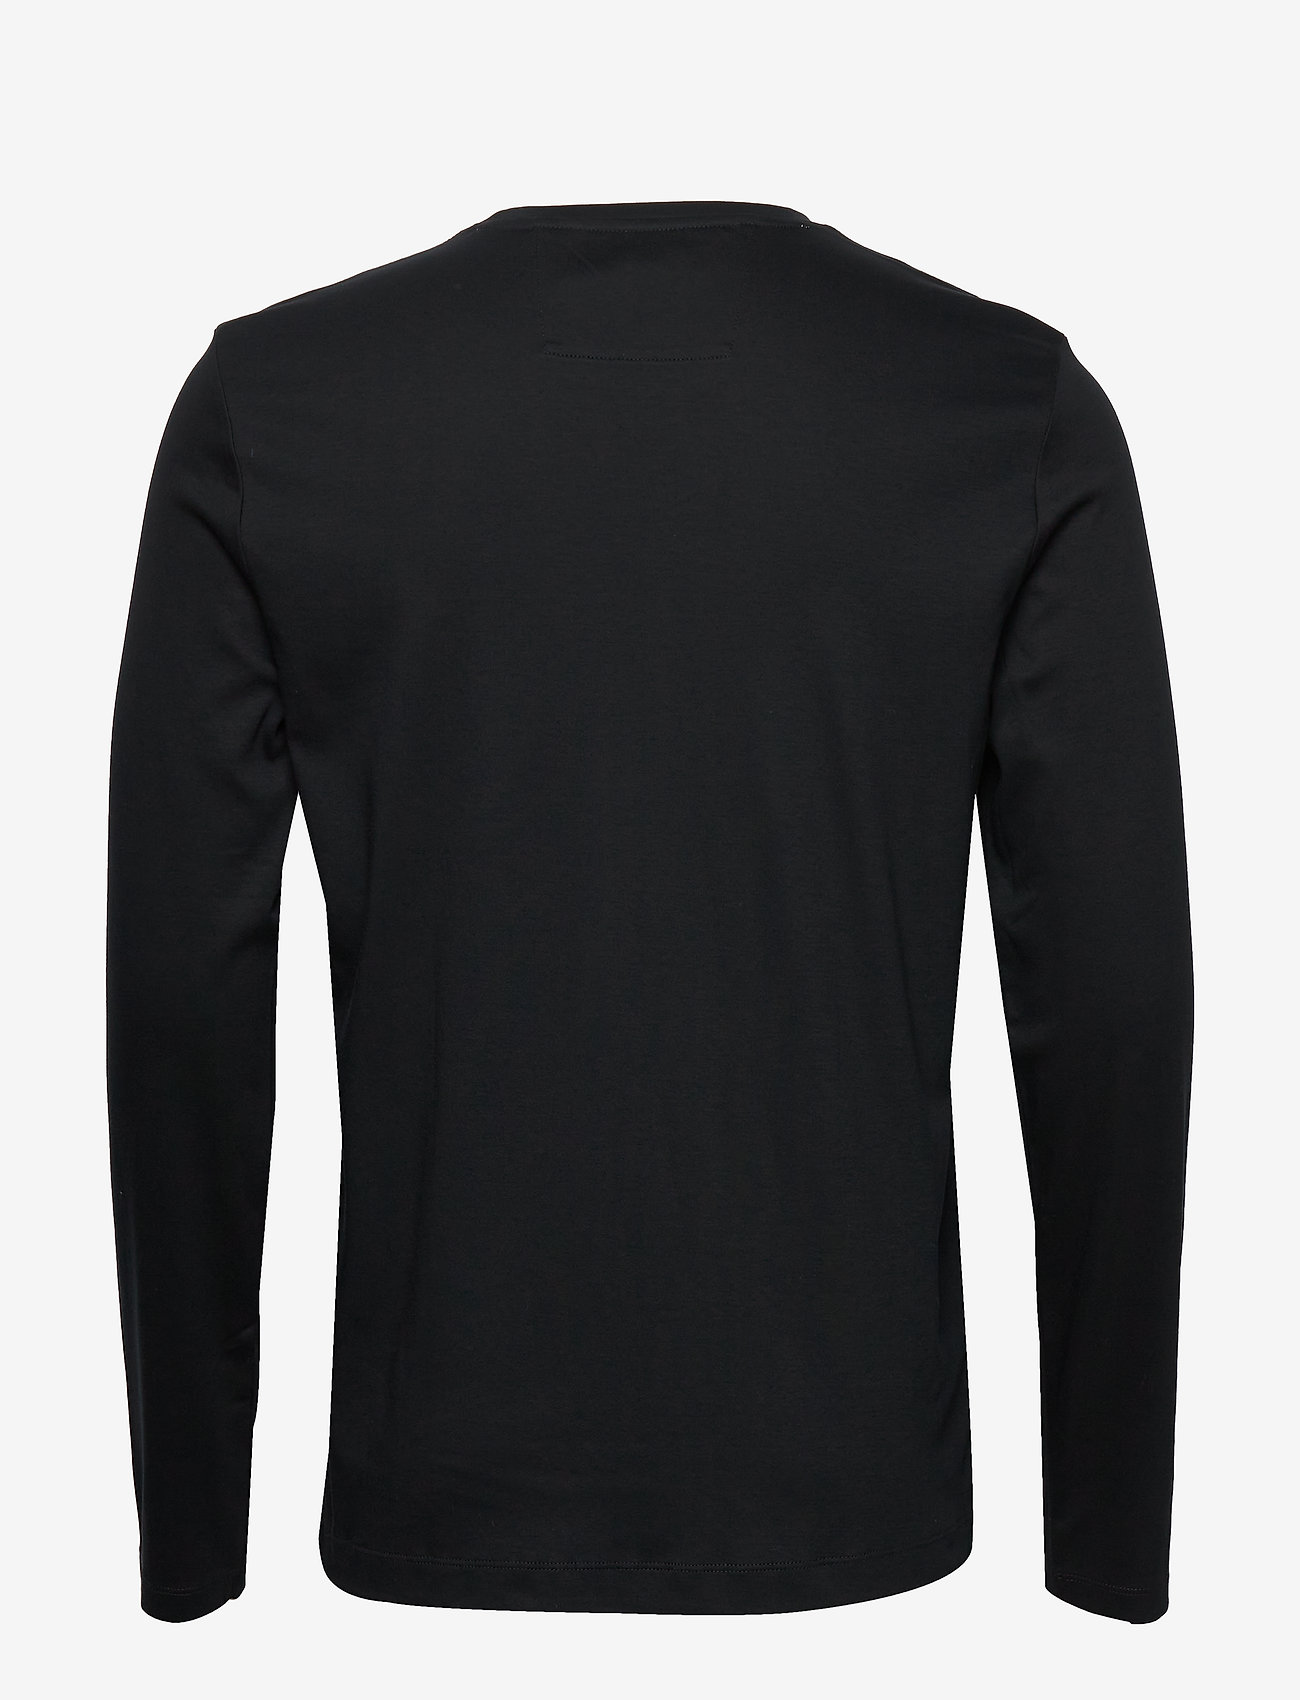 Banana Republic - Luxury-Touch Crew-Neck T-Shirt - basic t-shirts - black - 1